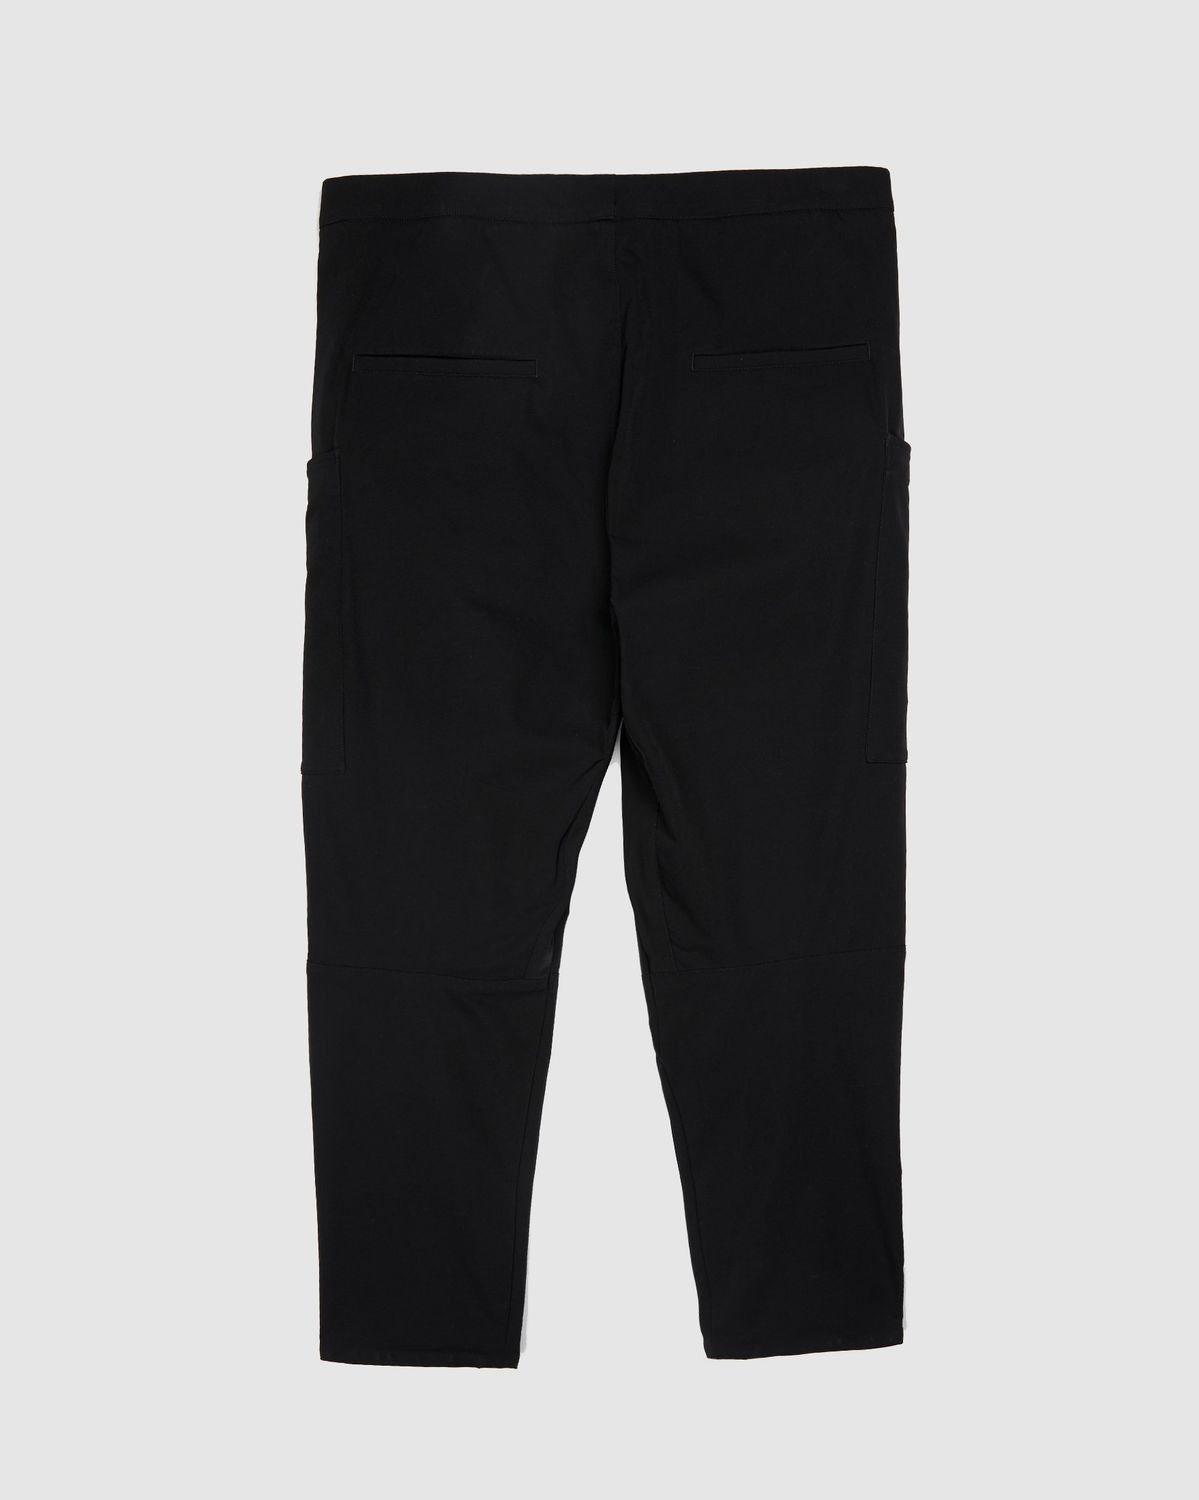 ACRONYM — P31A DS Trouser Black - Image 2